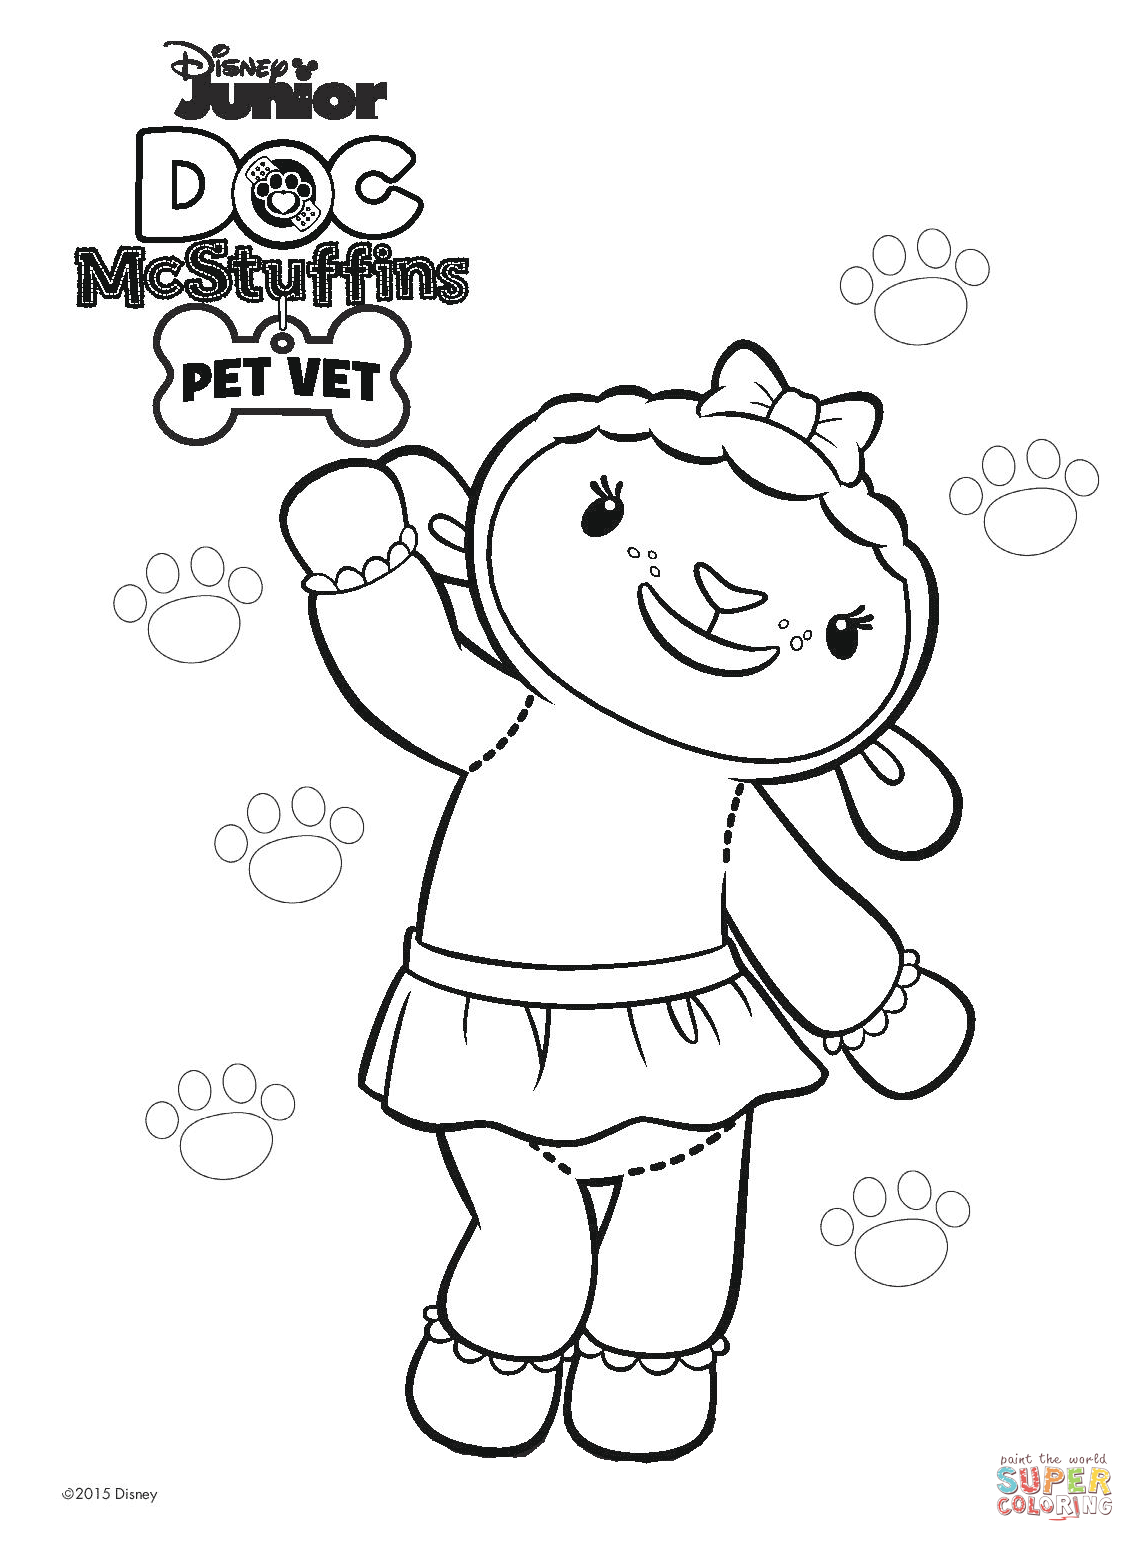 Doc Coloring Pages At Getdrawings Com Free For Personal